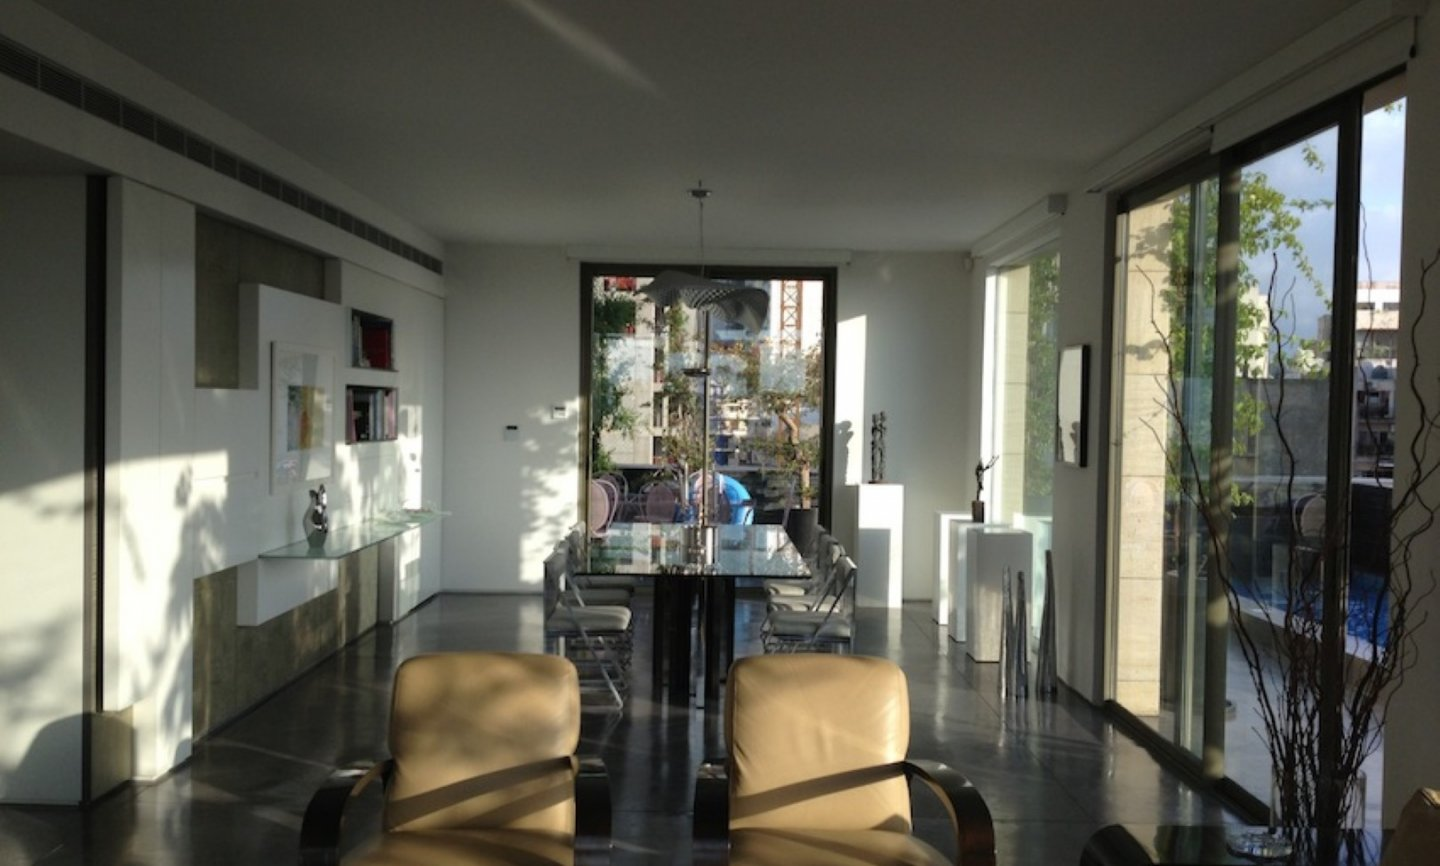 M.N Apartment - project overview image